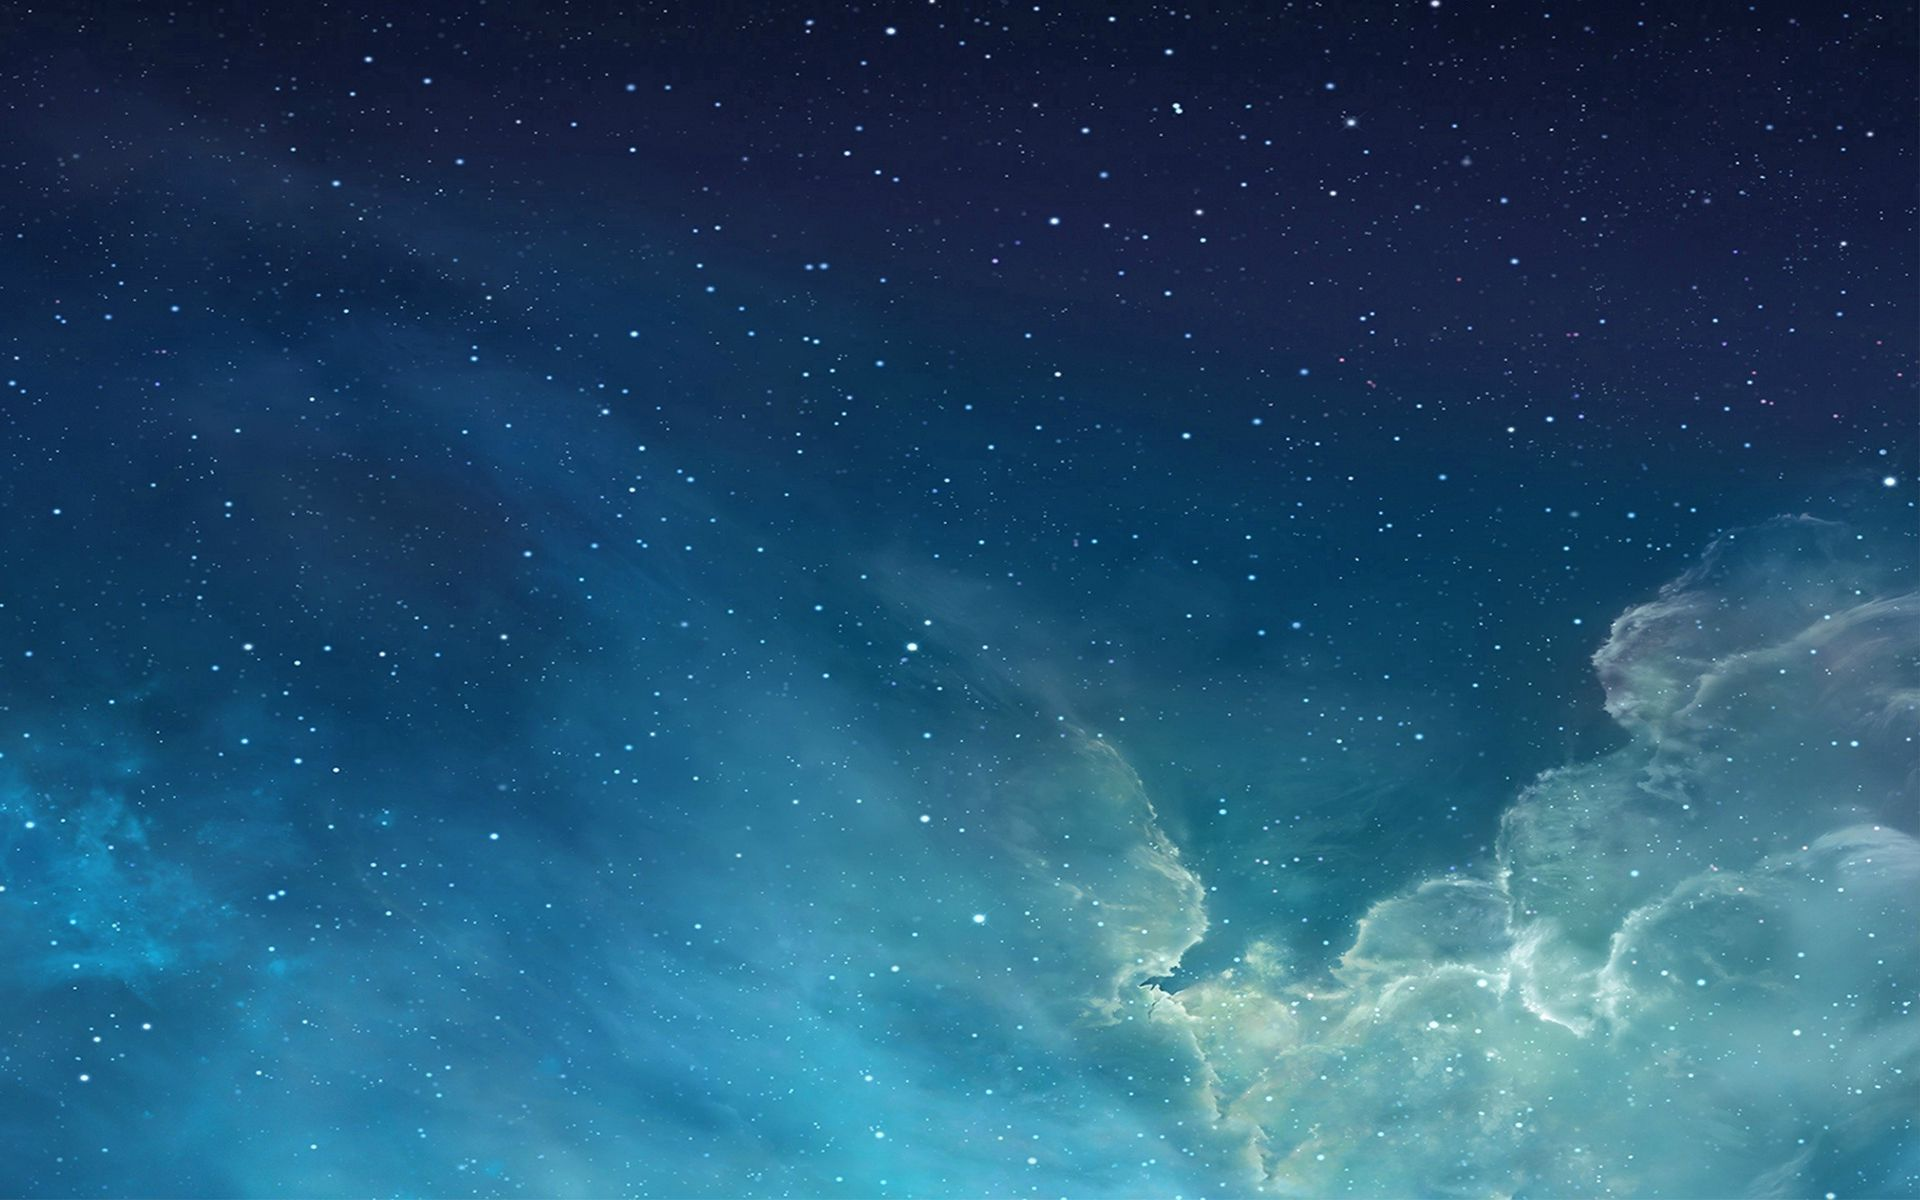 sky background images